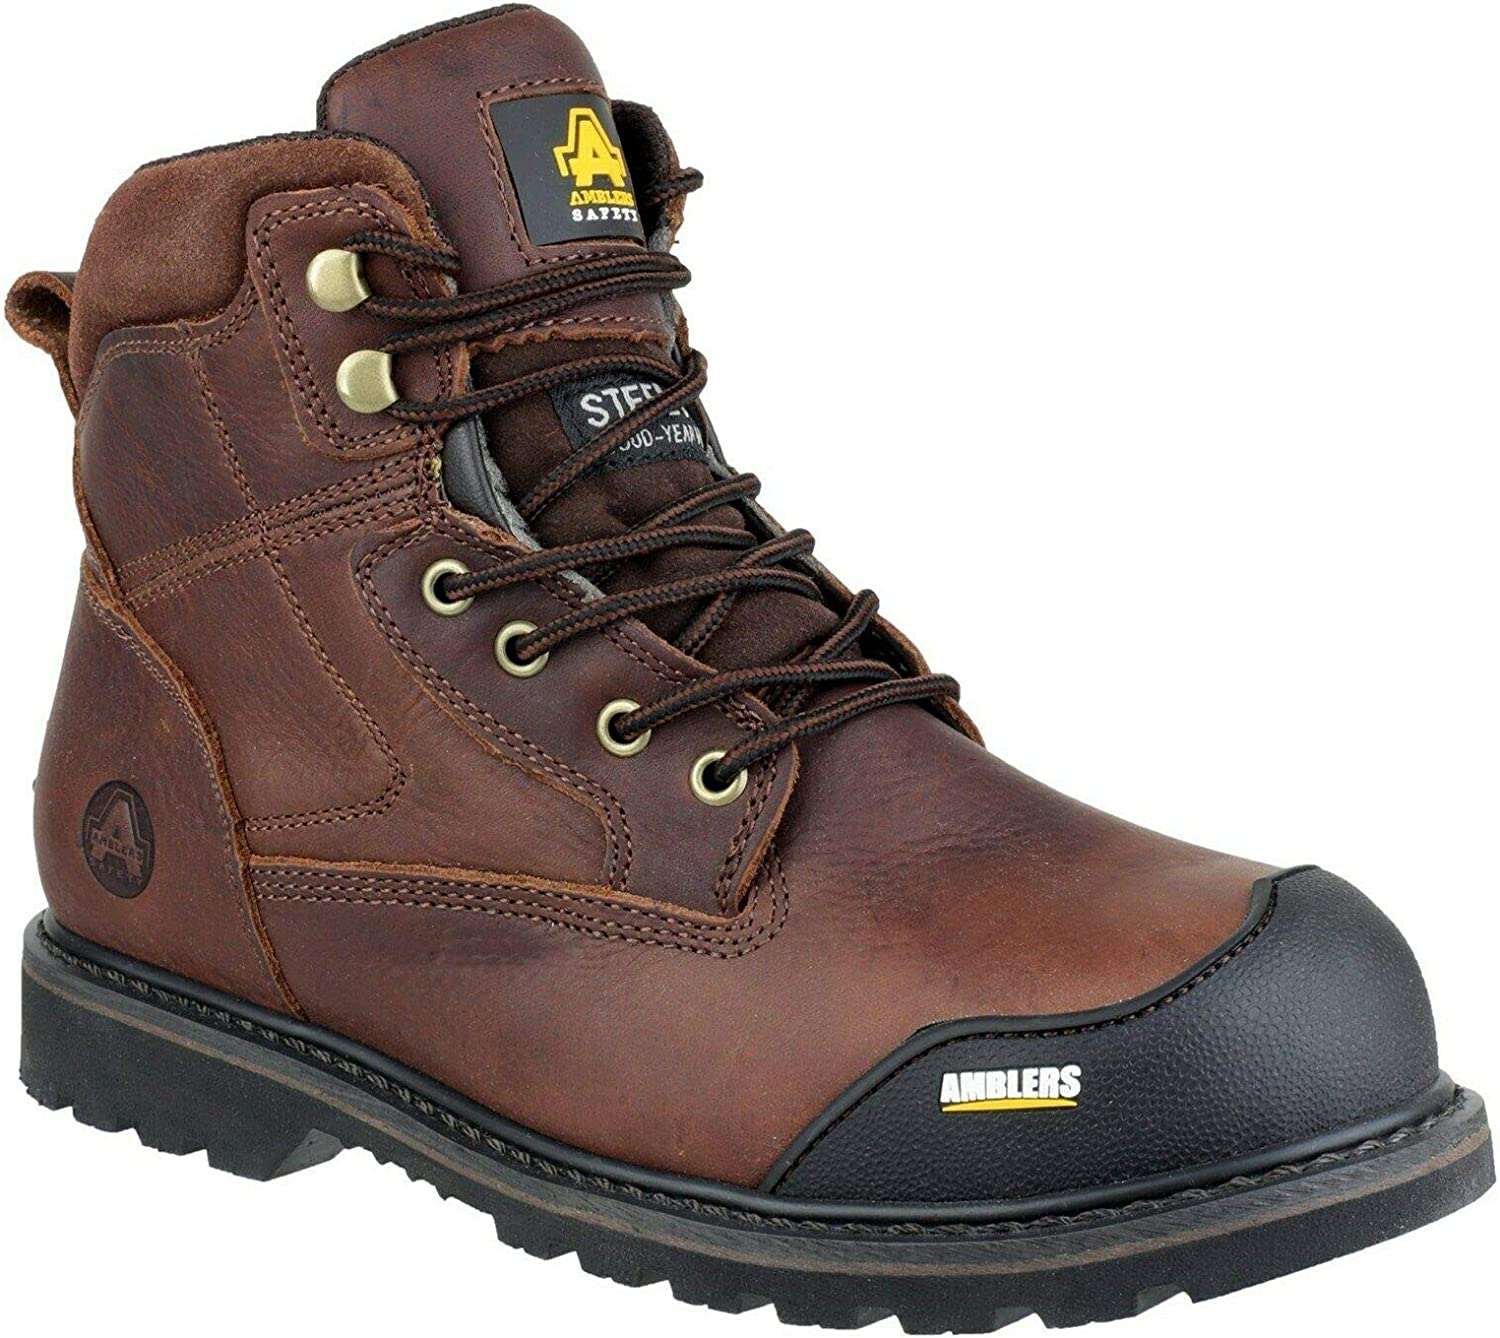 Amblers Safety FS167 Goodyear Welted Safety Work Boots Brown 6-13 Lace up